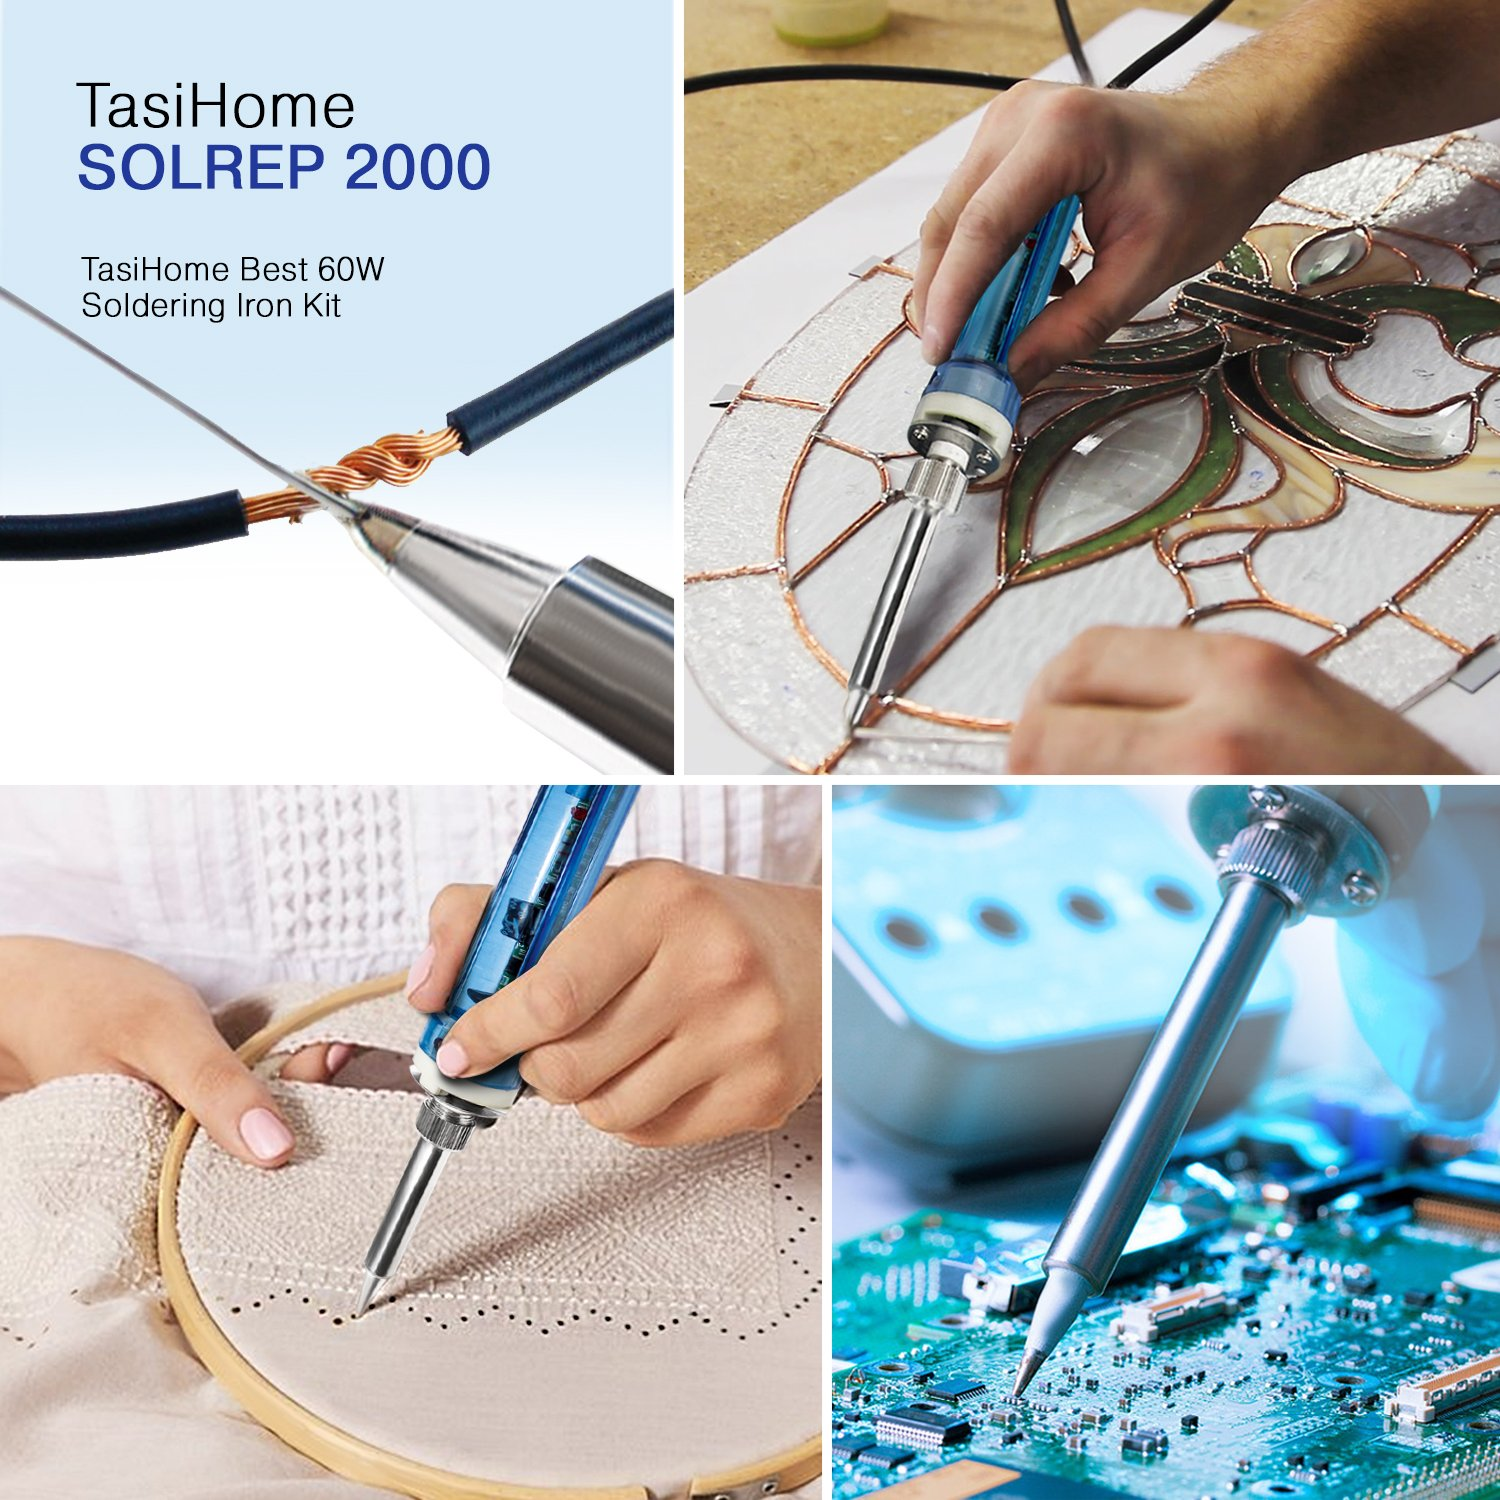 TasiHome 110 V 60W Soldering Iron Kit With Temperature Adjustment For Reliable Electronic Circuit Repairs By Eliminating Component Damage. Robust Electrical And Jewelry Repairs by TasiHome (Image #4)